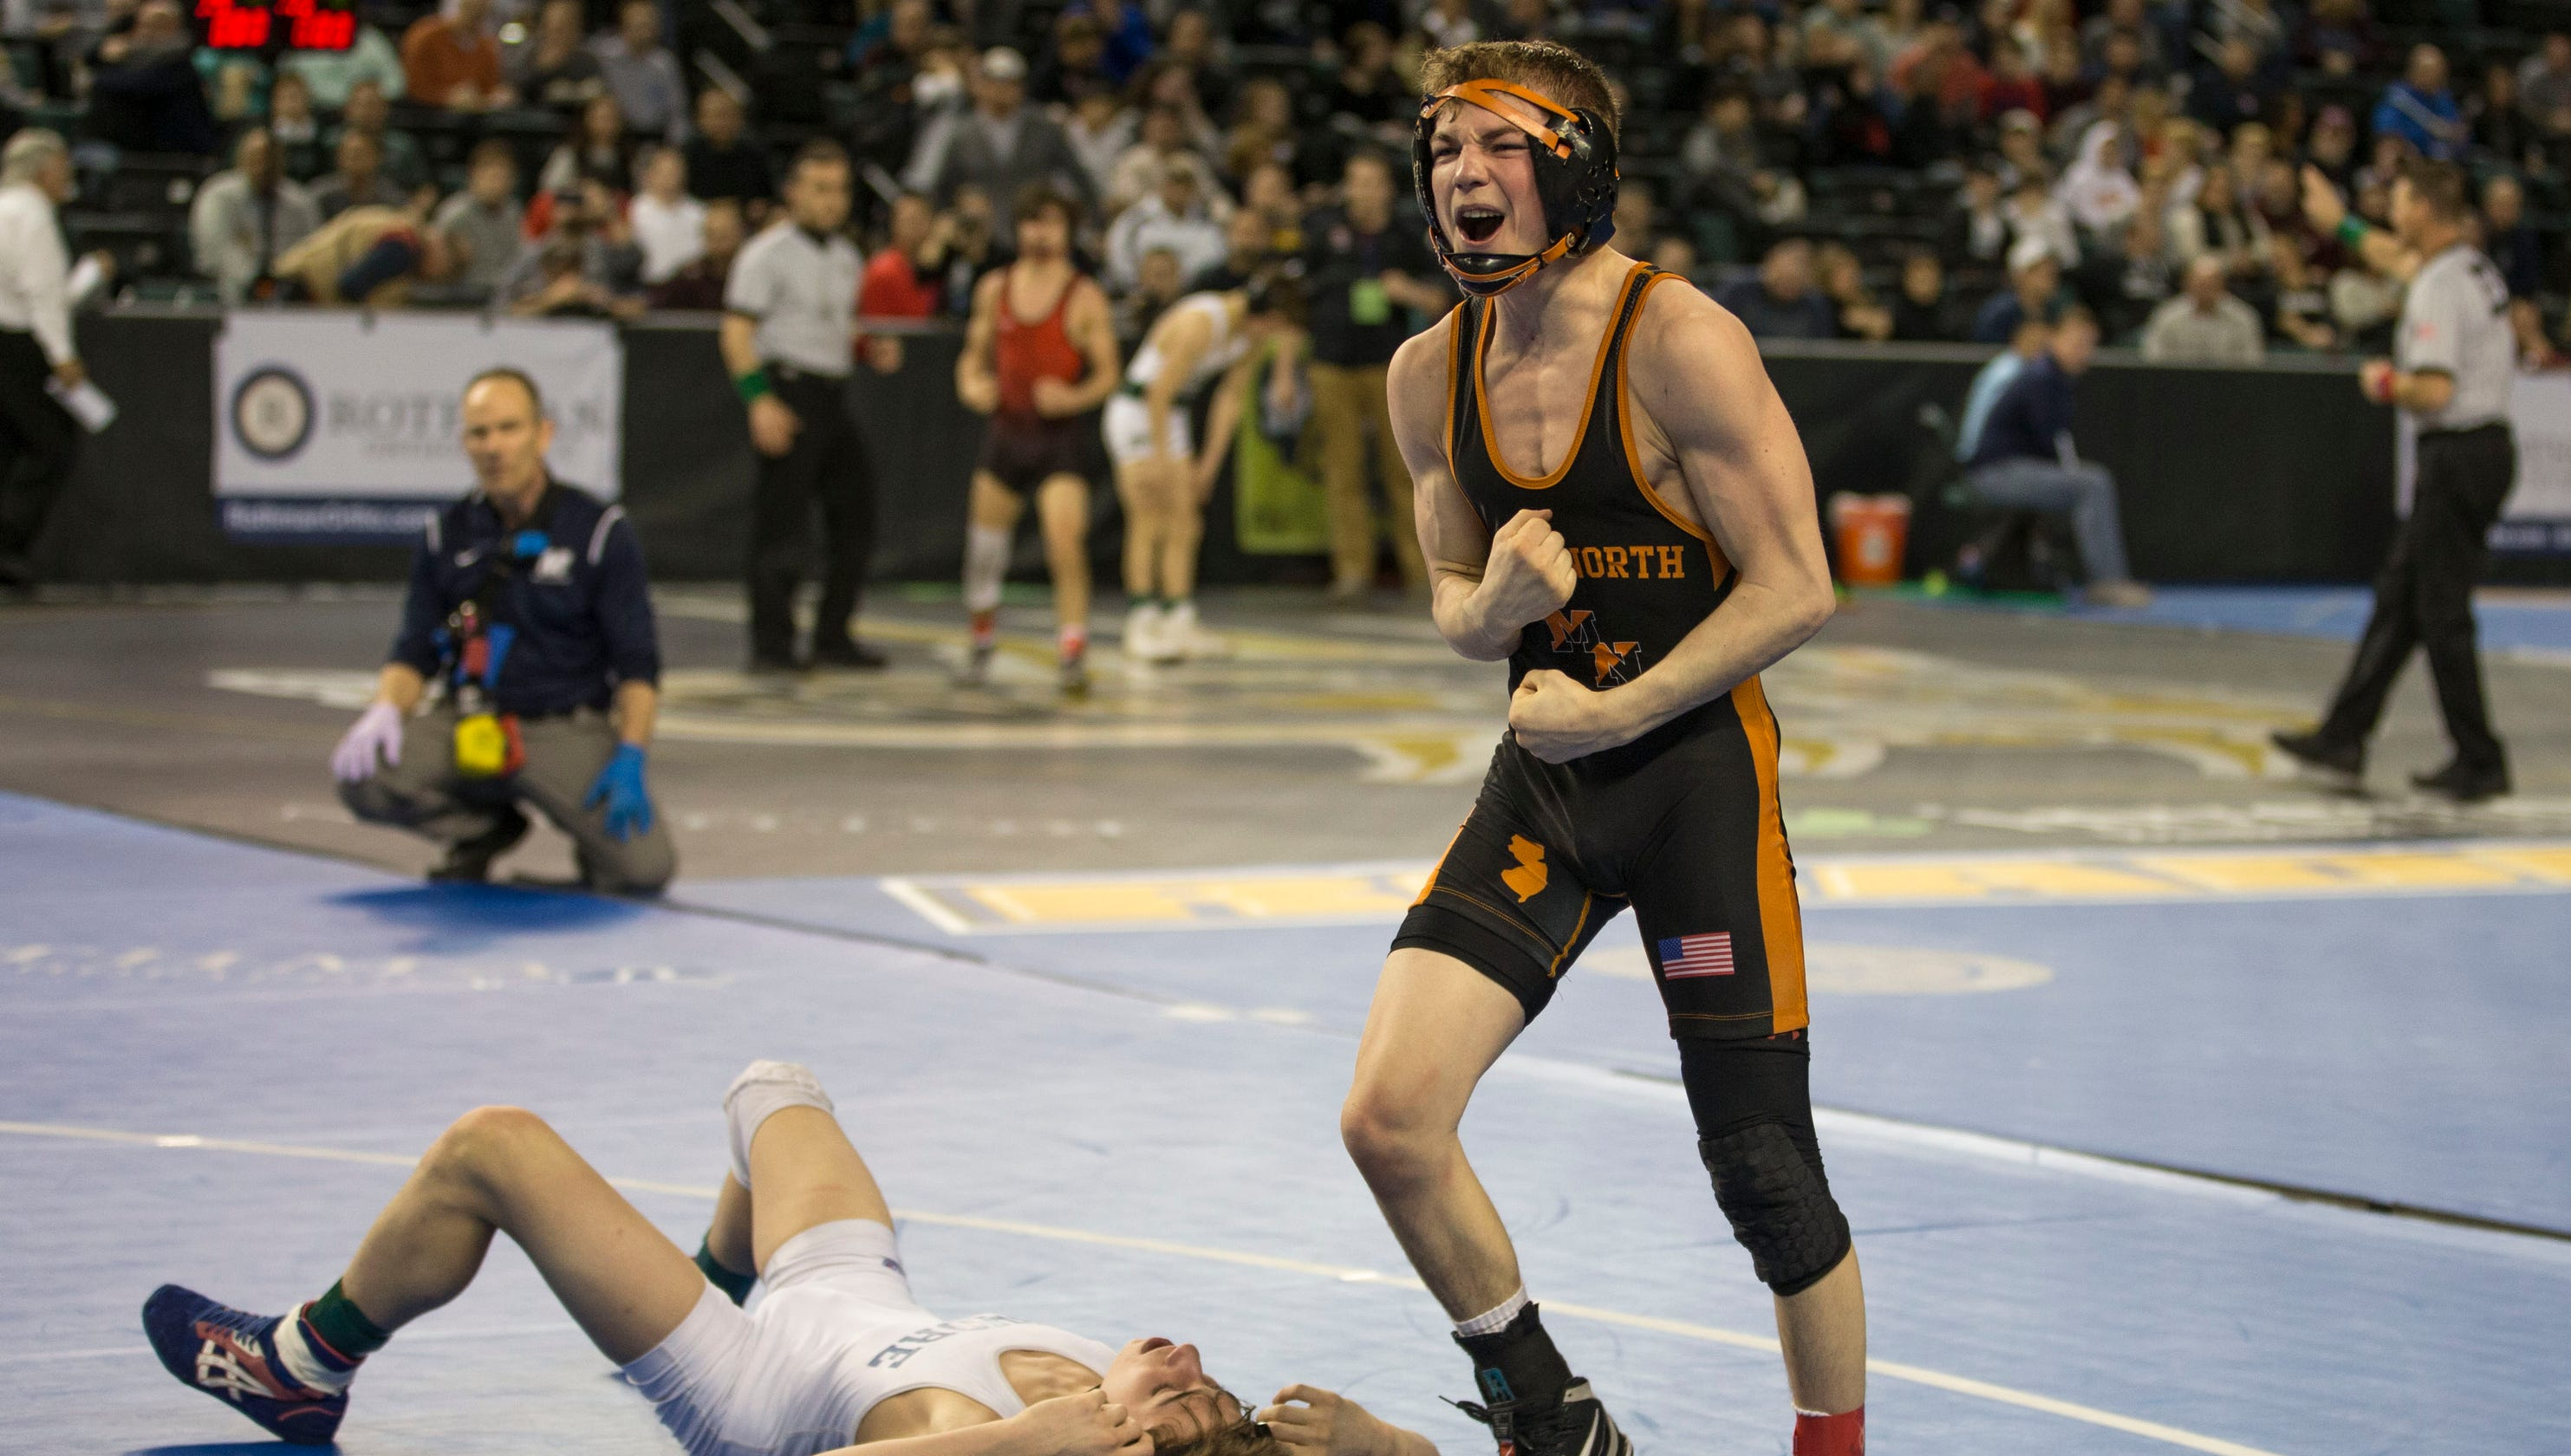 NJ wrestling: Five finalists from the Shore for the big show